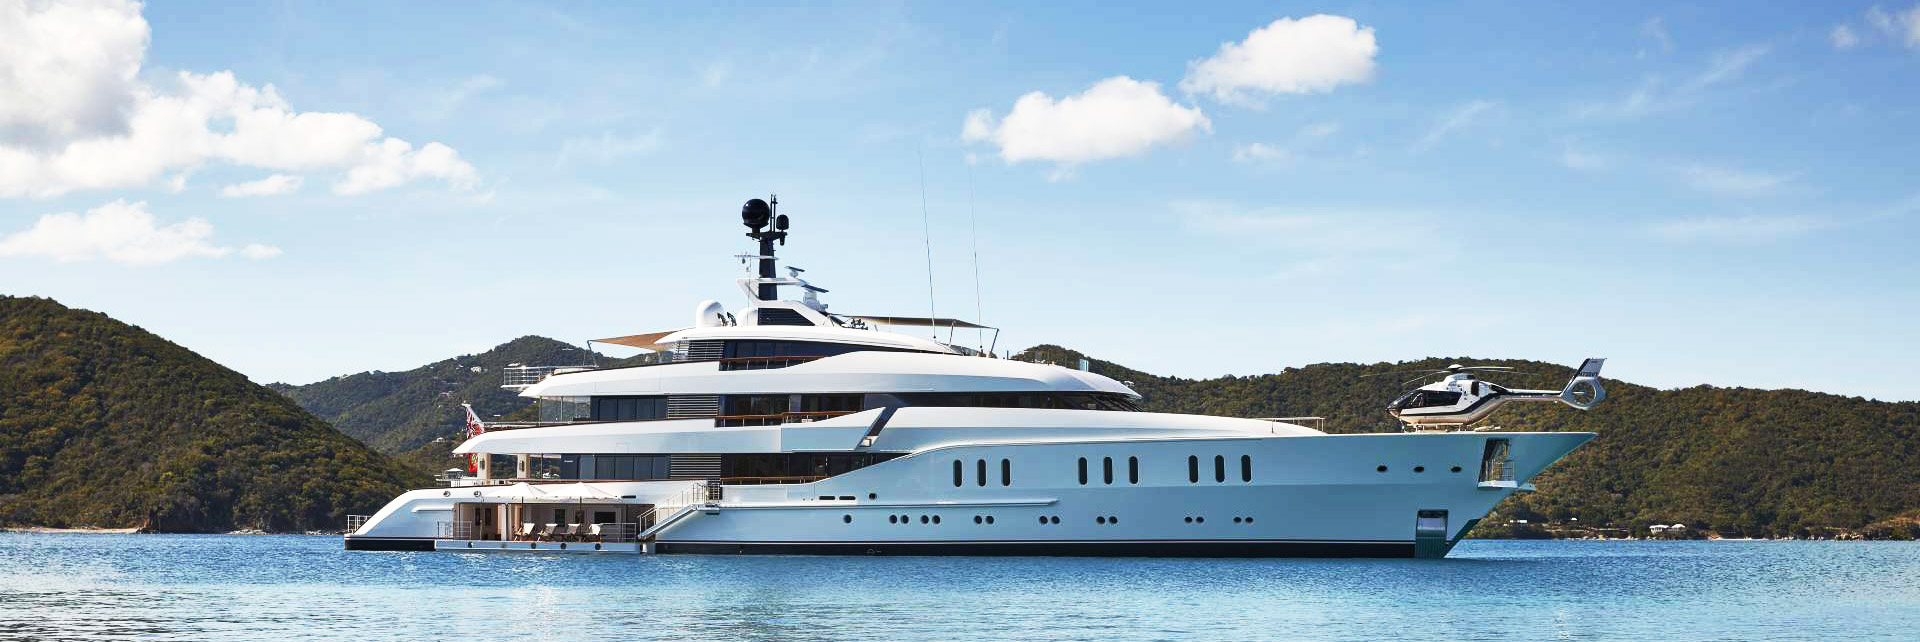 Feadship - Royal Dutch Shipyard - KRSR Co-sponsor